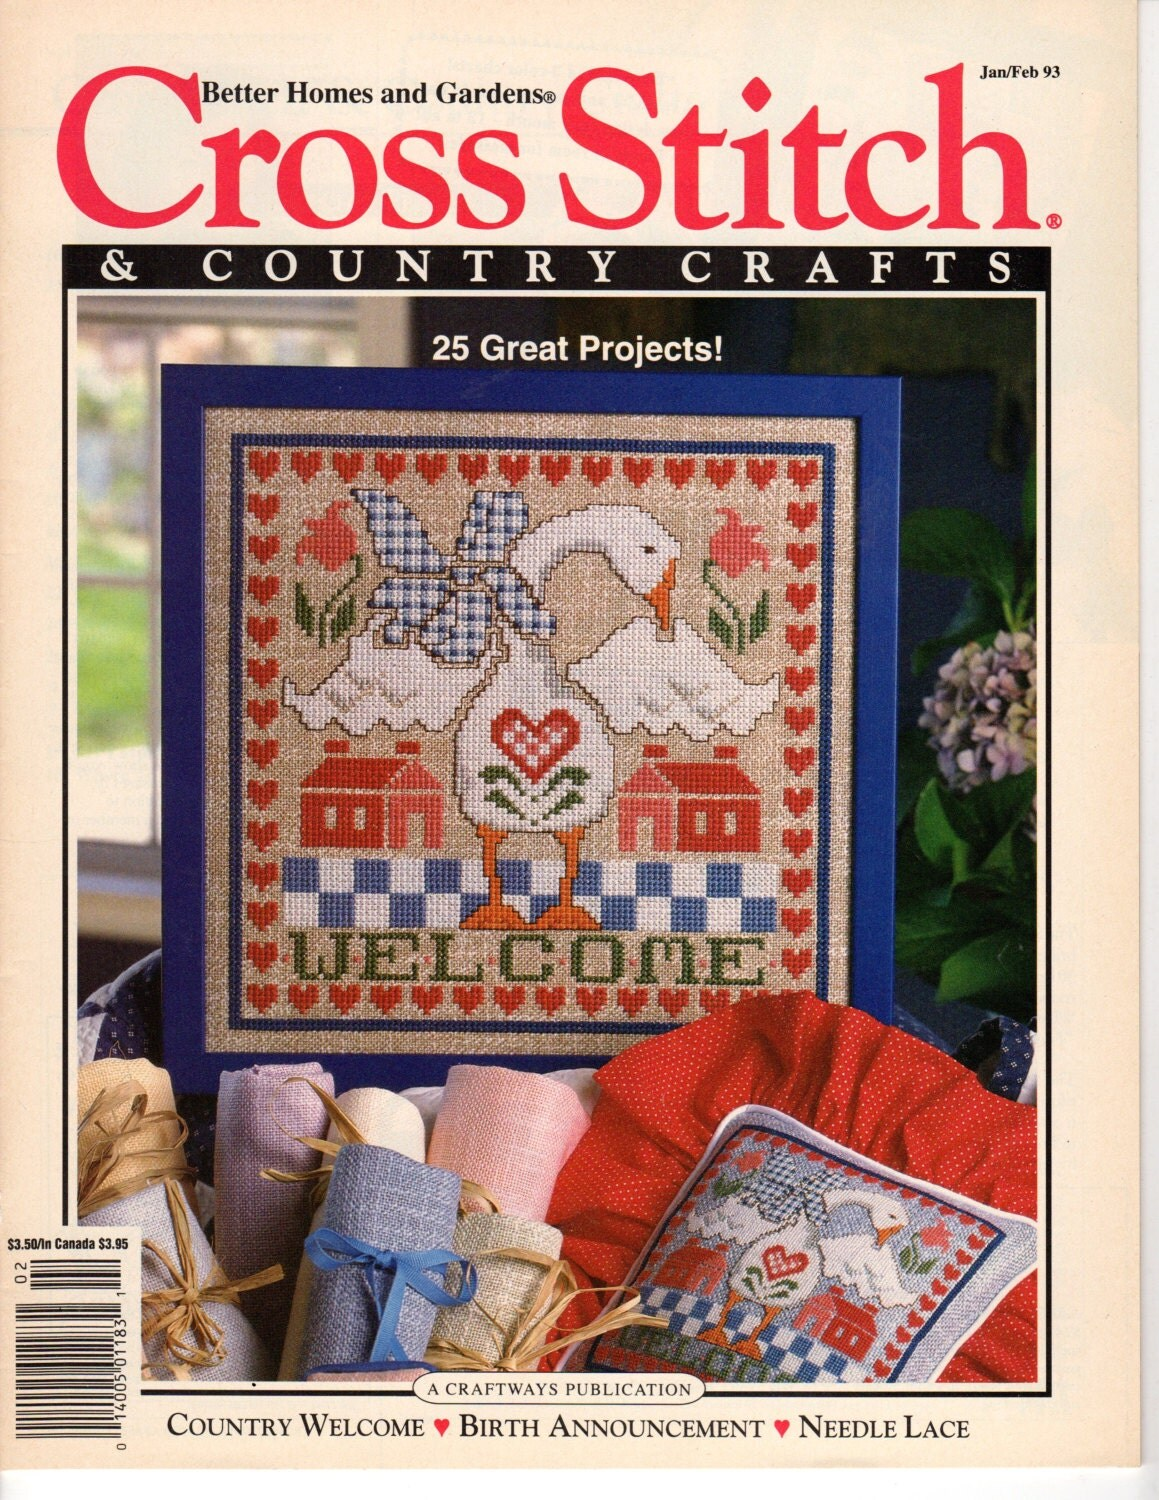 Cross stitch country crafts magazine back issues - Cross Stitch Country Crafts Issue Jan Feb93